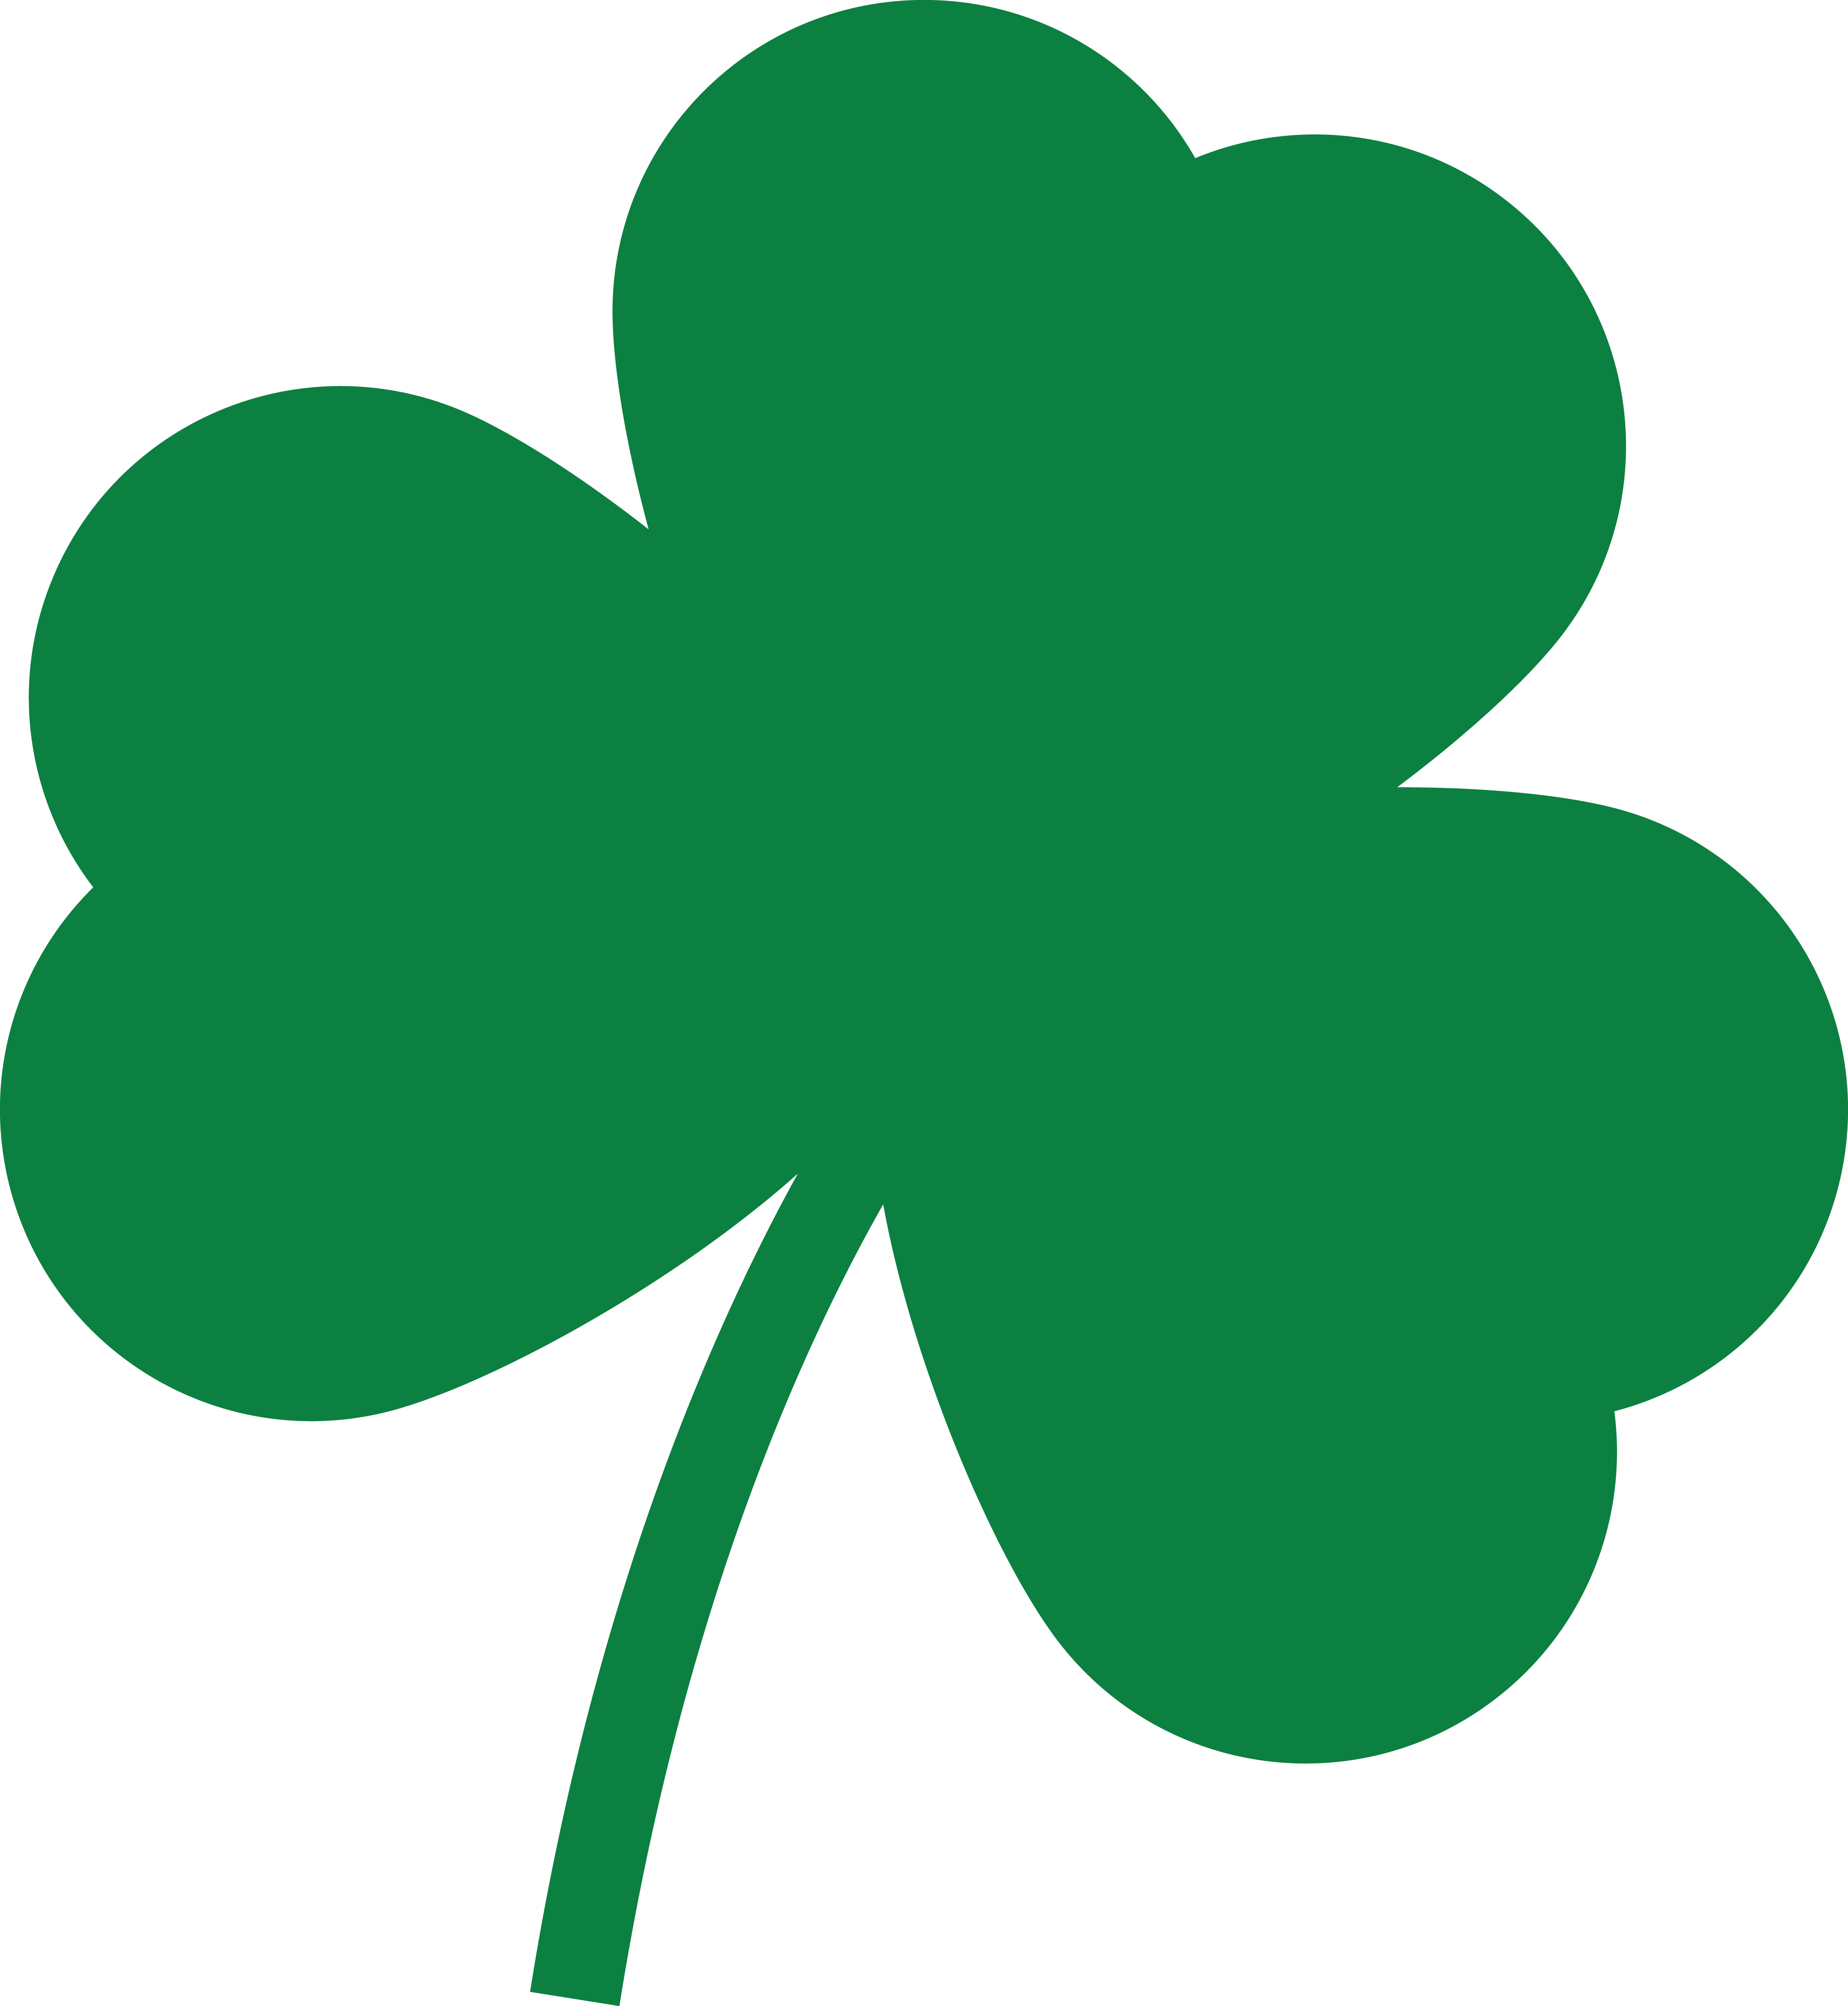 Free Clipart Of A St Paddys Day Solid Green Shamrock Four Leaf Clover.